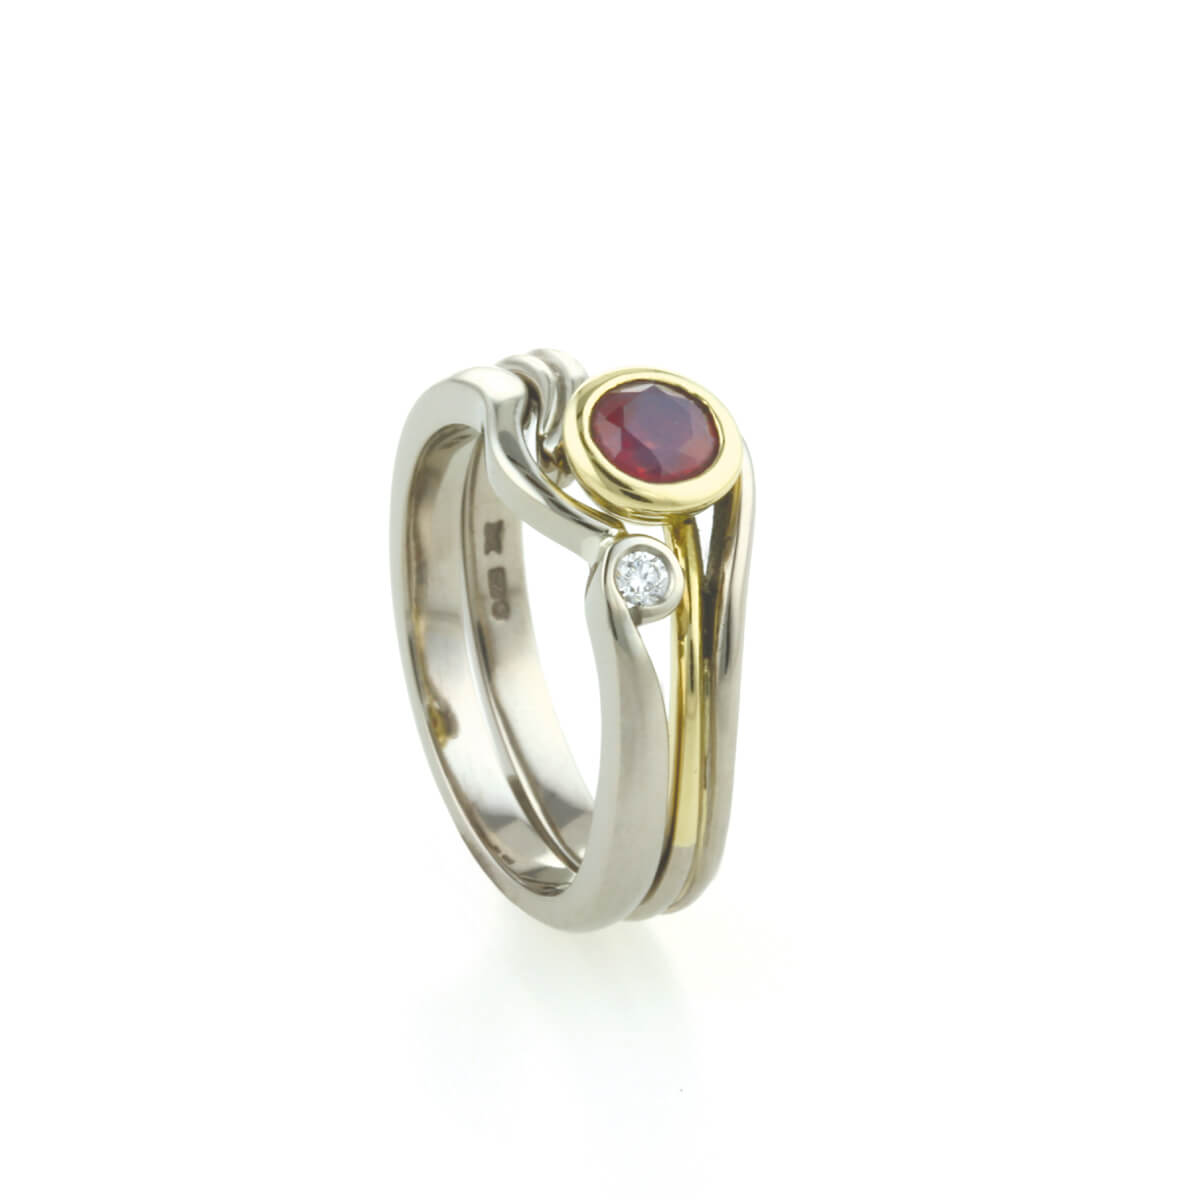 handmade-18ct-white-gold-yellow-gold-ruby-and-diamond-bridal-jewellery-2-copy